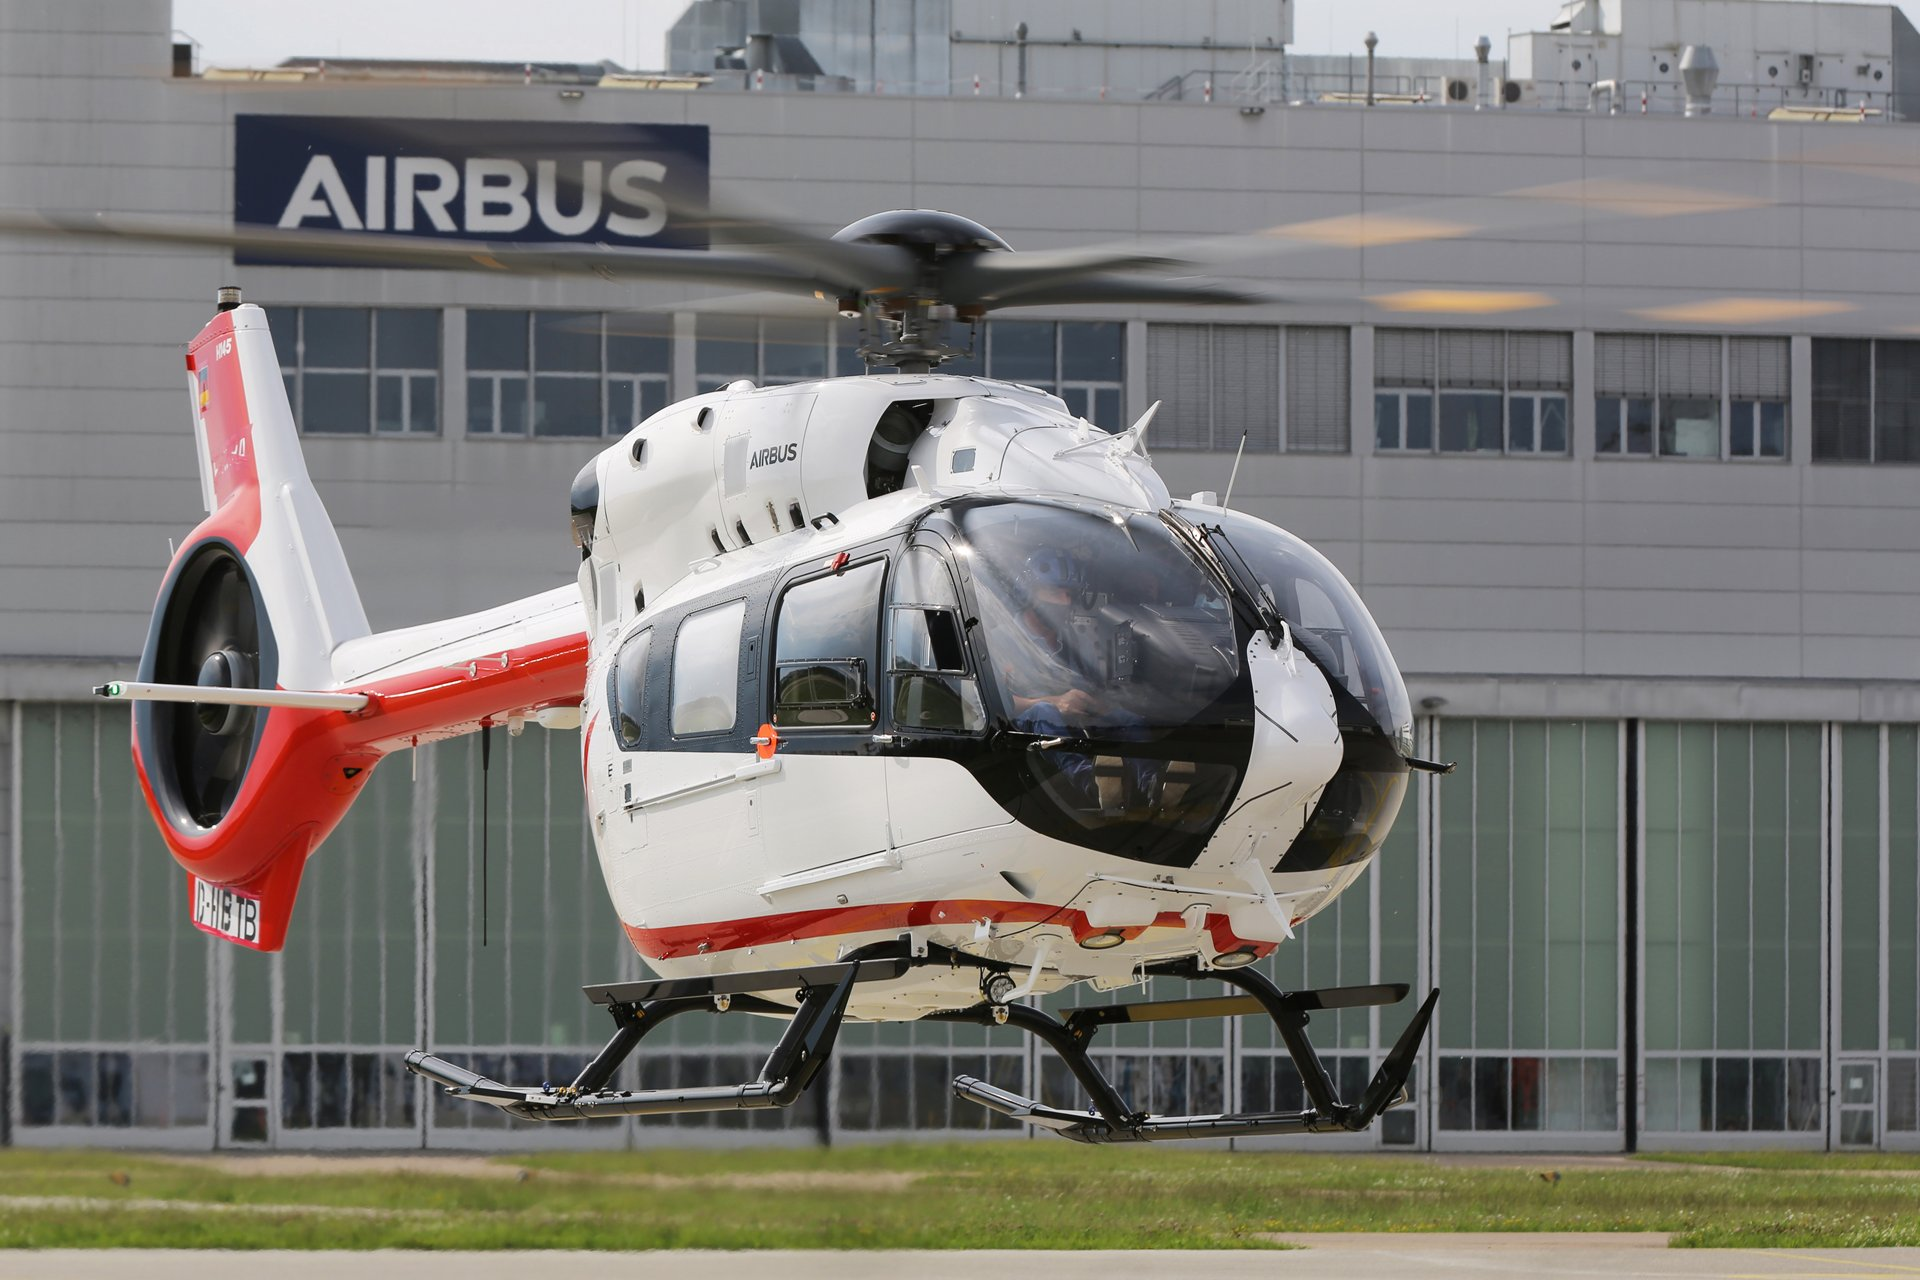 SAF Group will be operating three more five-bladed H145s for emergency medical services (EMS) in France.